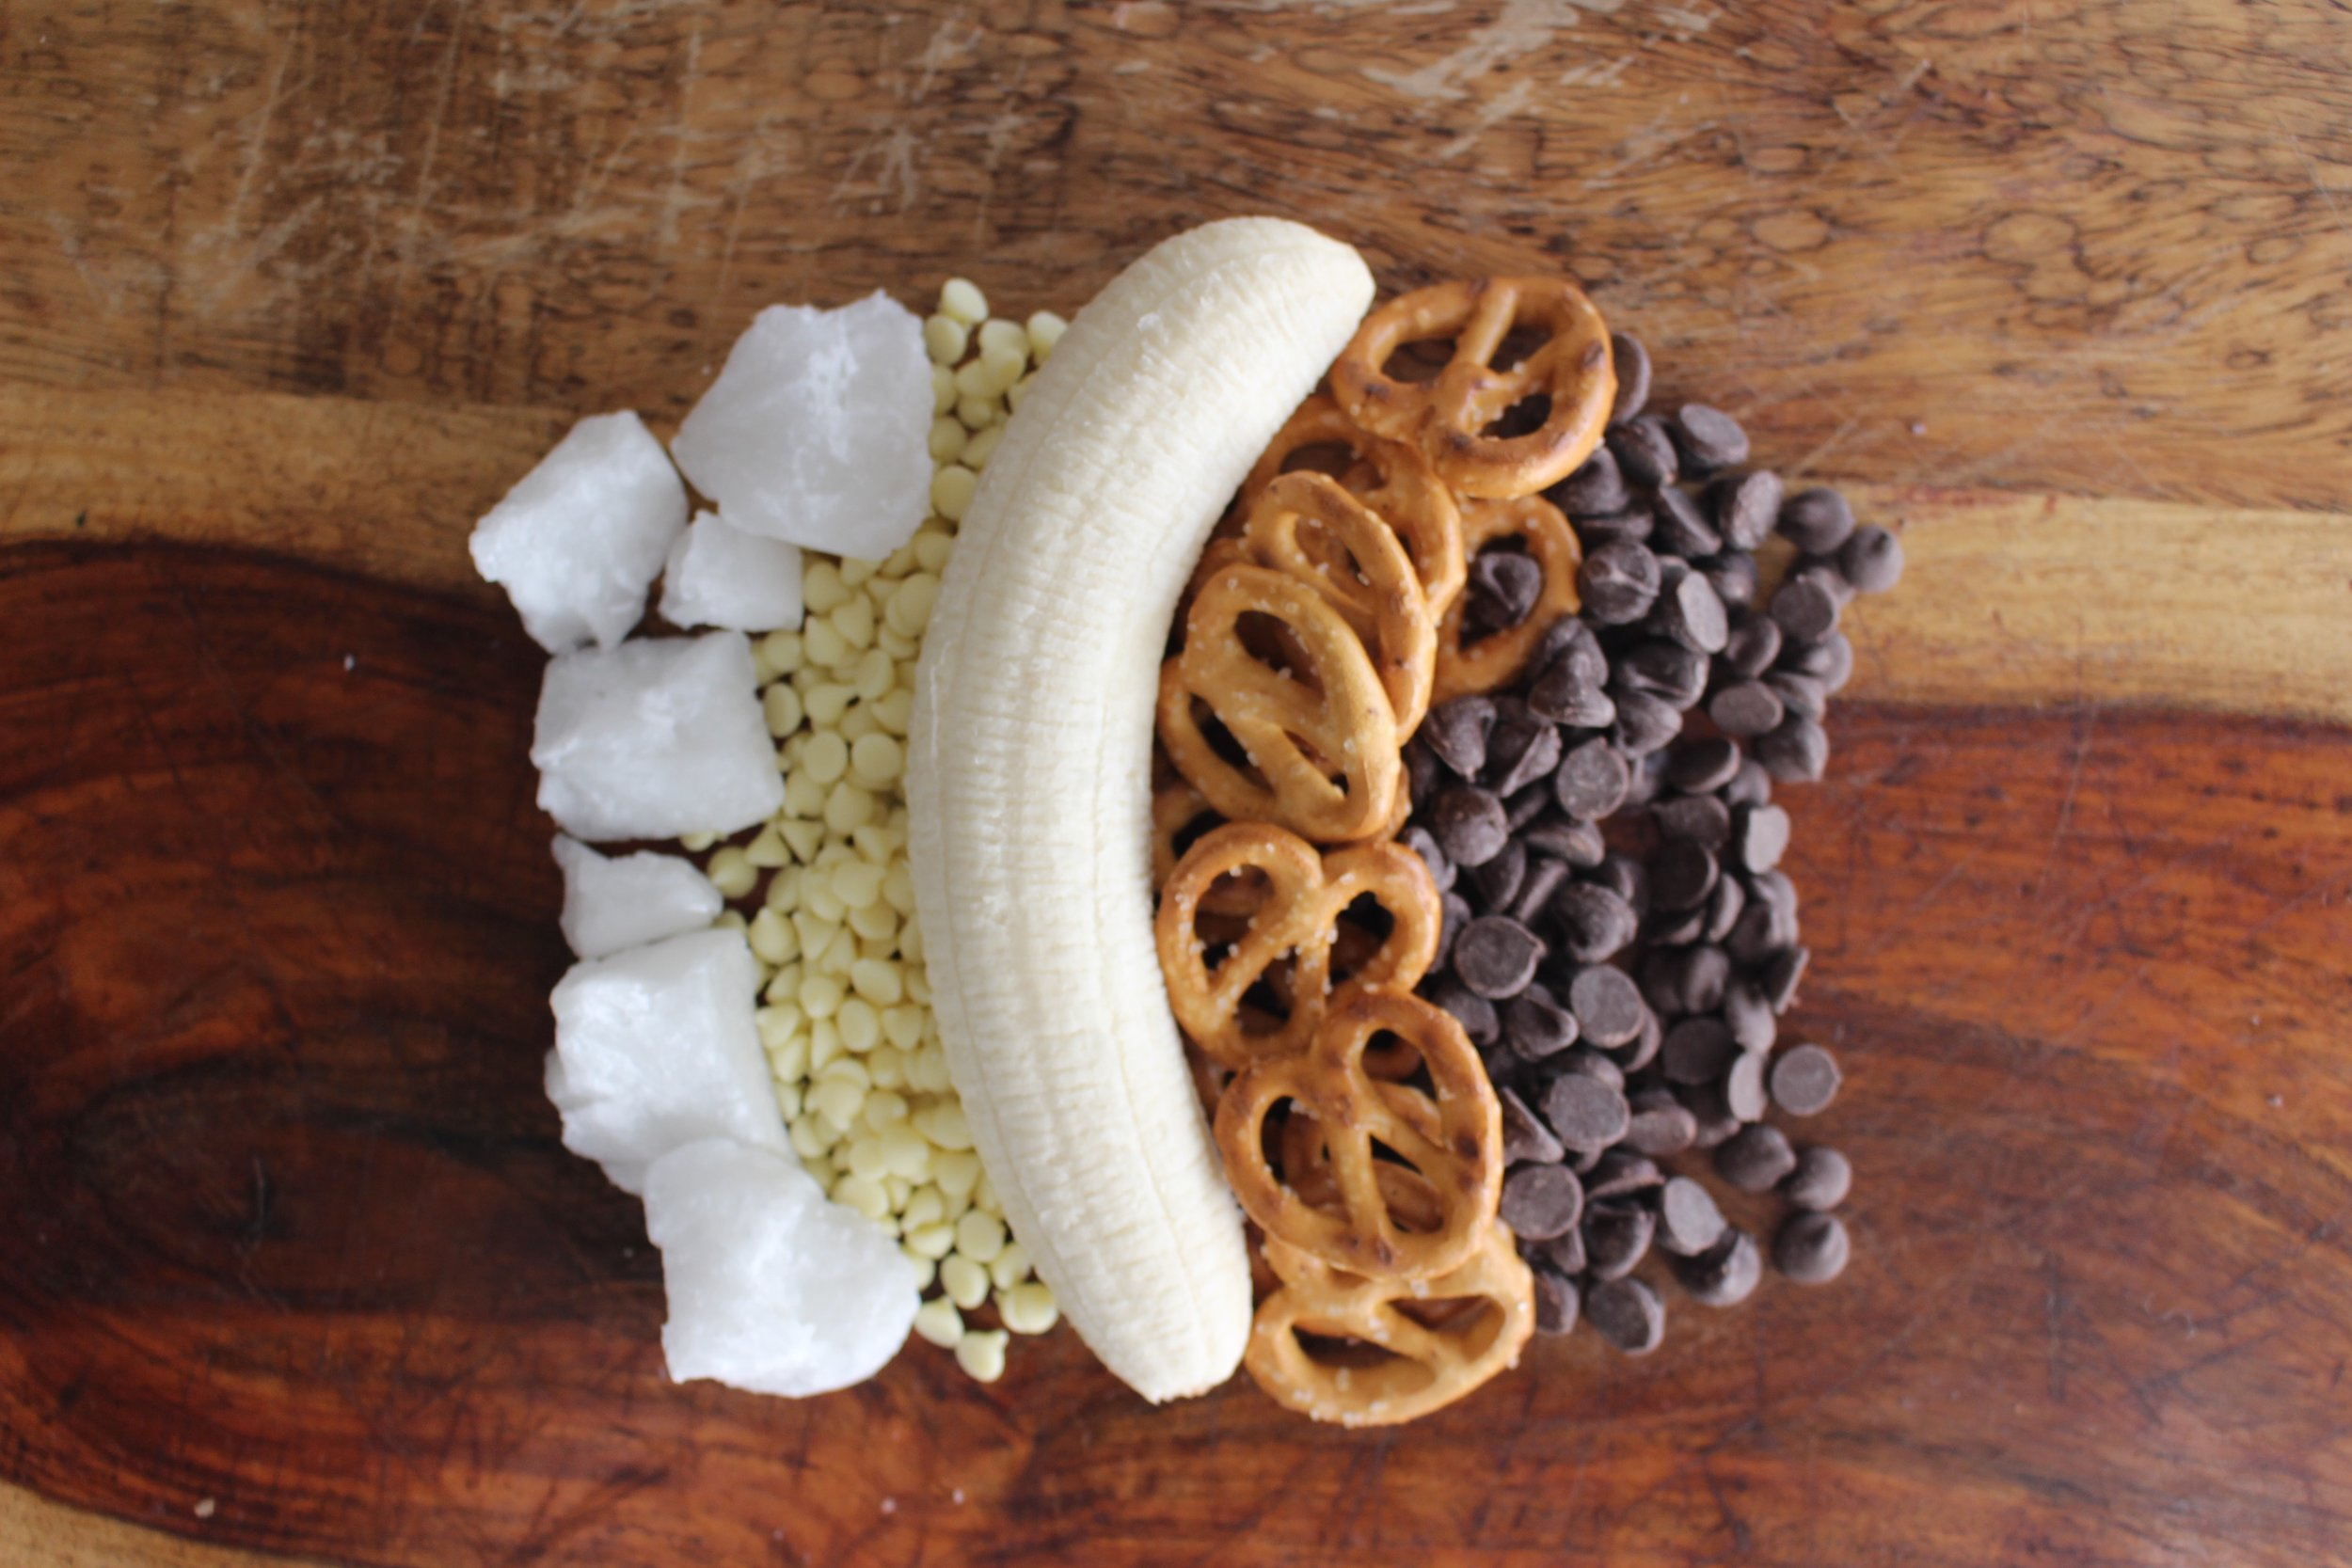 Chocolate banana reindeer pops   Me & The Moose. Sliced bananas and pretzels dipped in chocolate are an easy, festive, and healthier way to celebrate the season. #meandthemoose #bananas #snacks #pretzels #Christmassnacks #Christmasrecipes